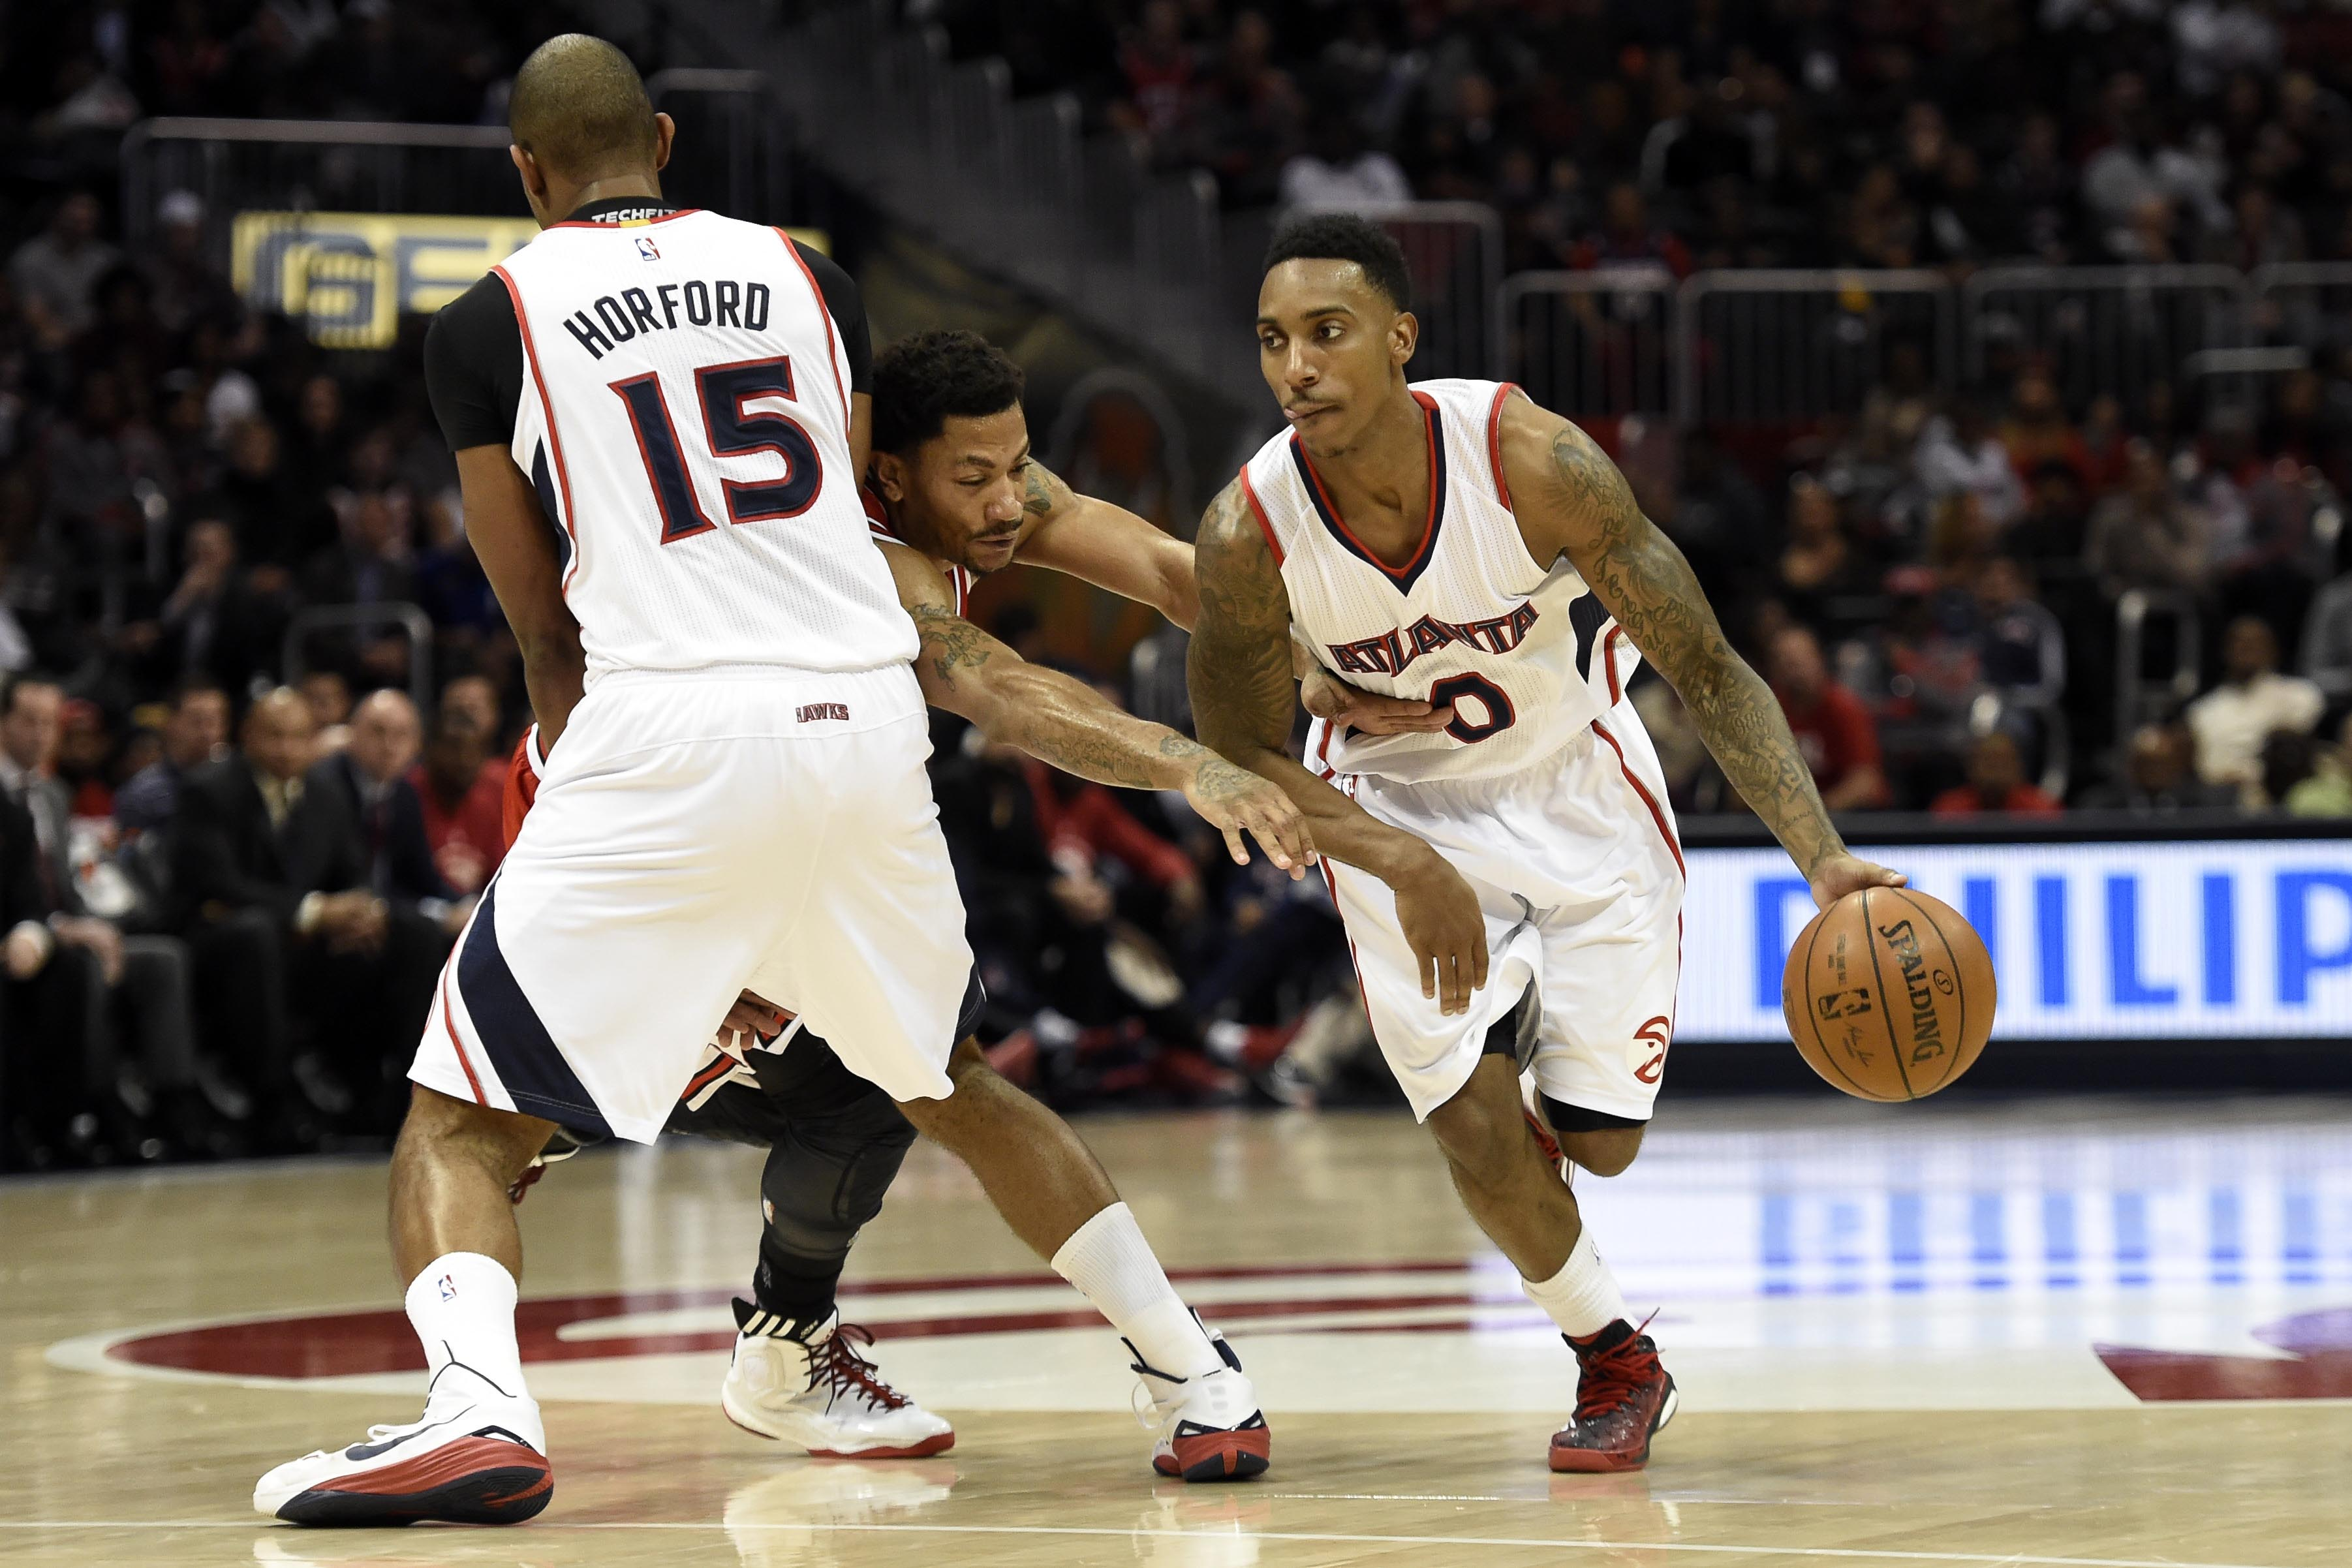 NBA scores 2014: The Hawks can win ugly and 3 other things we learned from Monday's NBA action